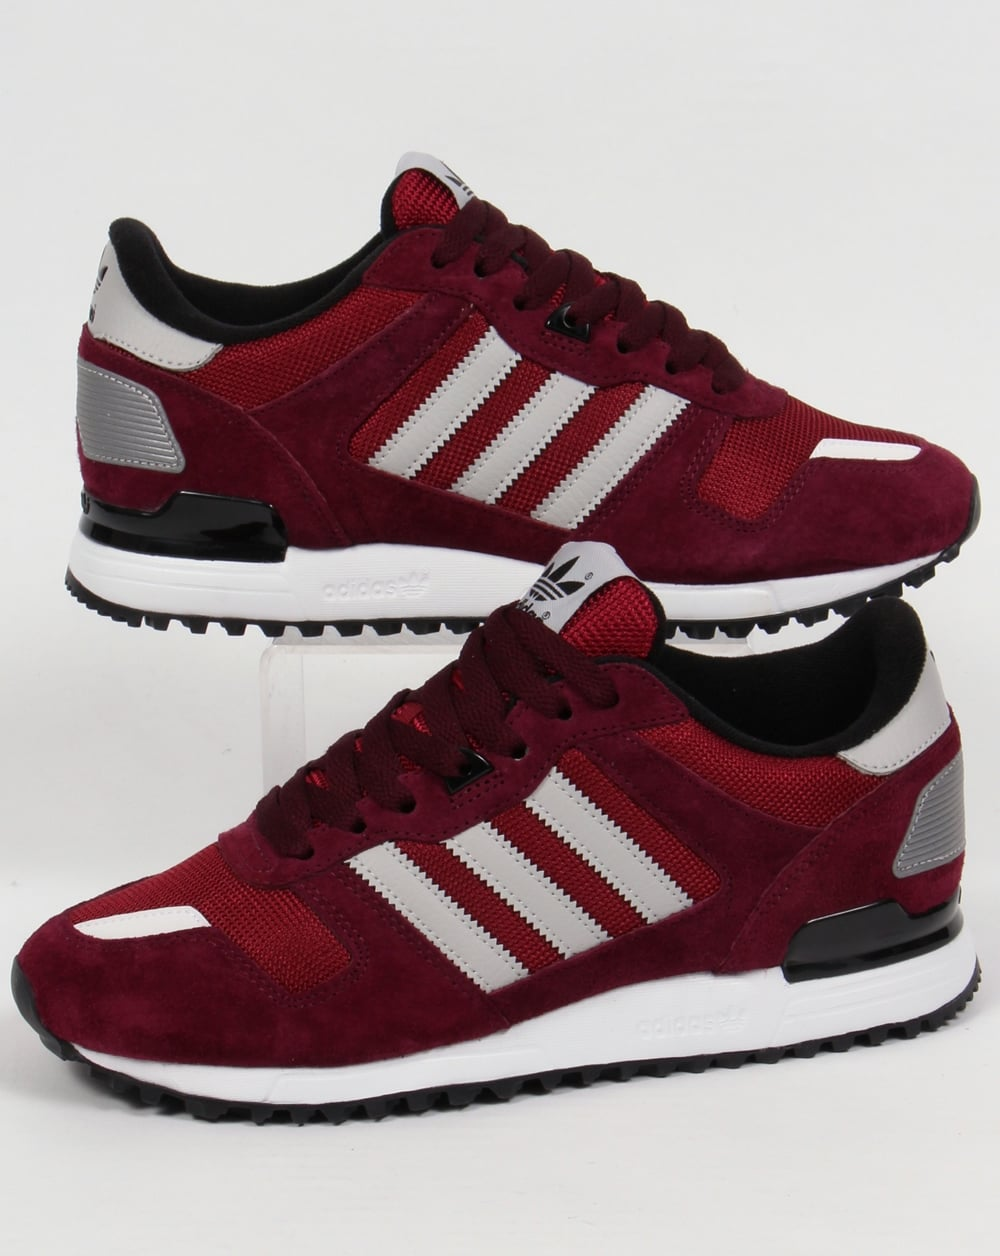 sélection premium bf99e a0e19 Adidas ZX 700 Trainers Burgundy/Grey/Black